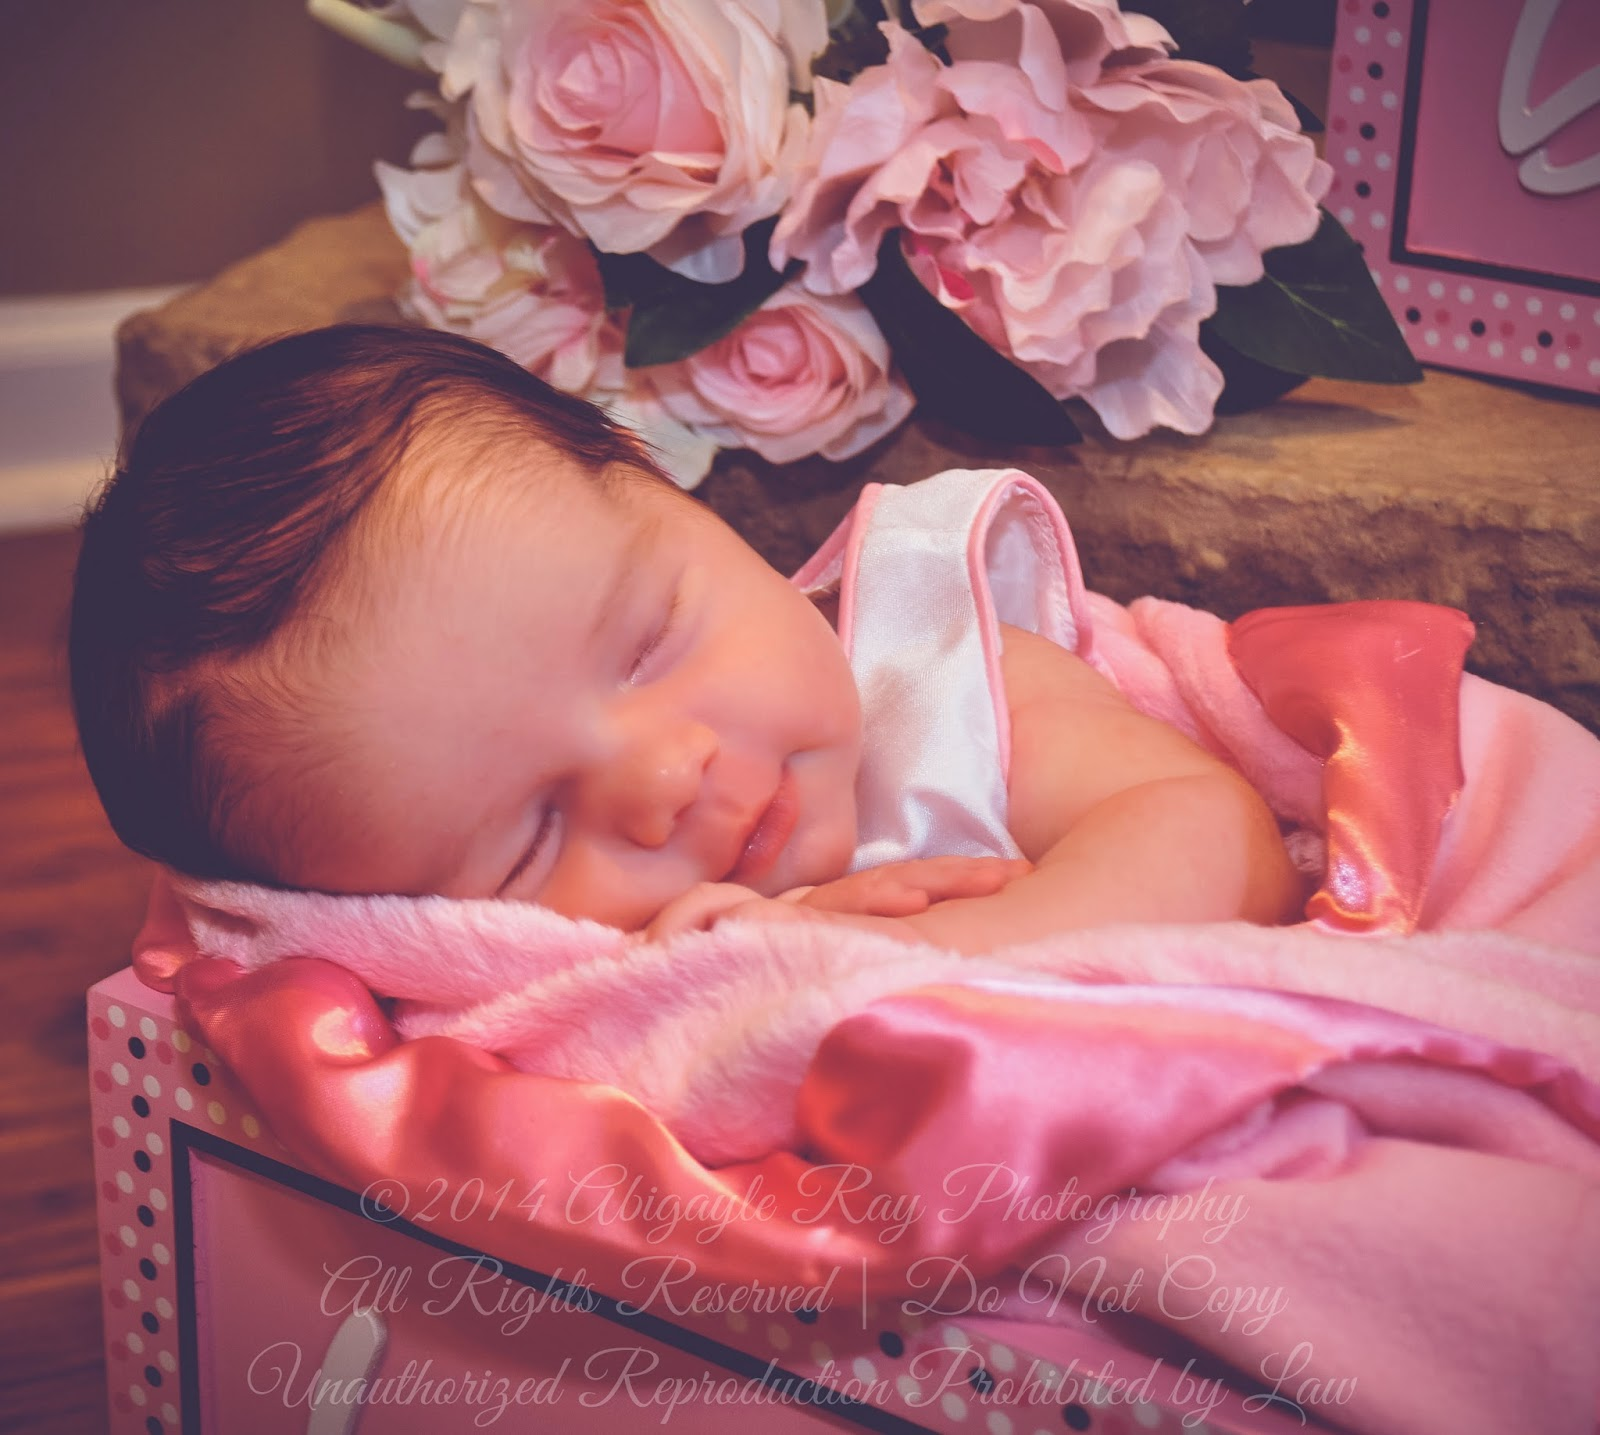 Newborn Photography Elmira, Newborn Photography Horseheads, Newborn Photography Corning, Newborn Photography Watkins Glen, Newborn Photography Waverly, Newborn Photography Sayre, Newborn Photography Athens, Newborn Photography Towanda, Newborn Photography Troy, Newborn Photography Canton, Newborn Photography Mansfield